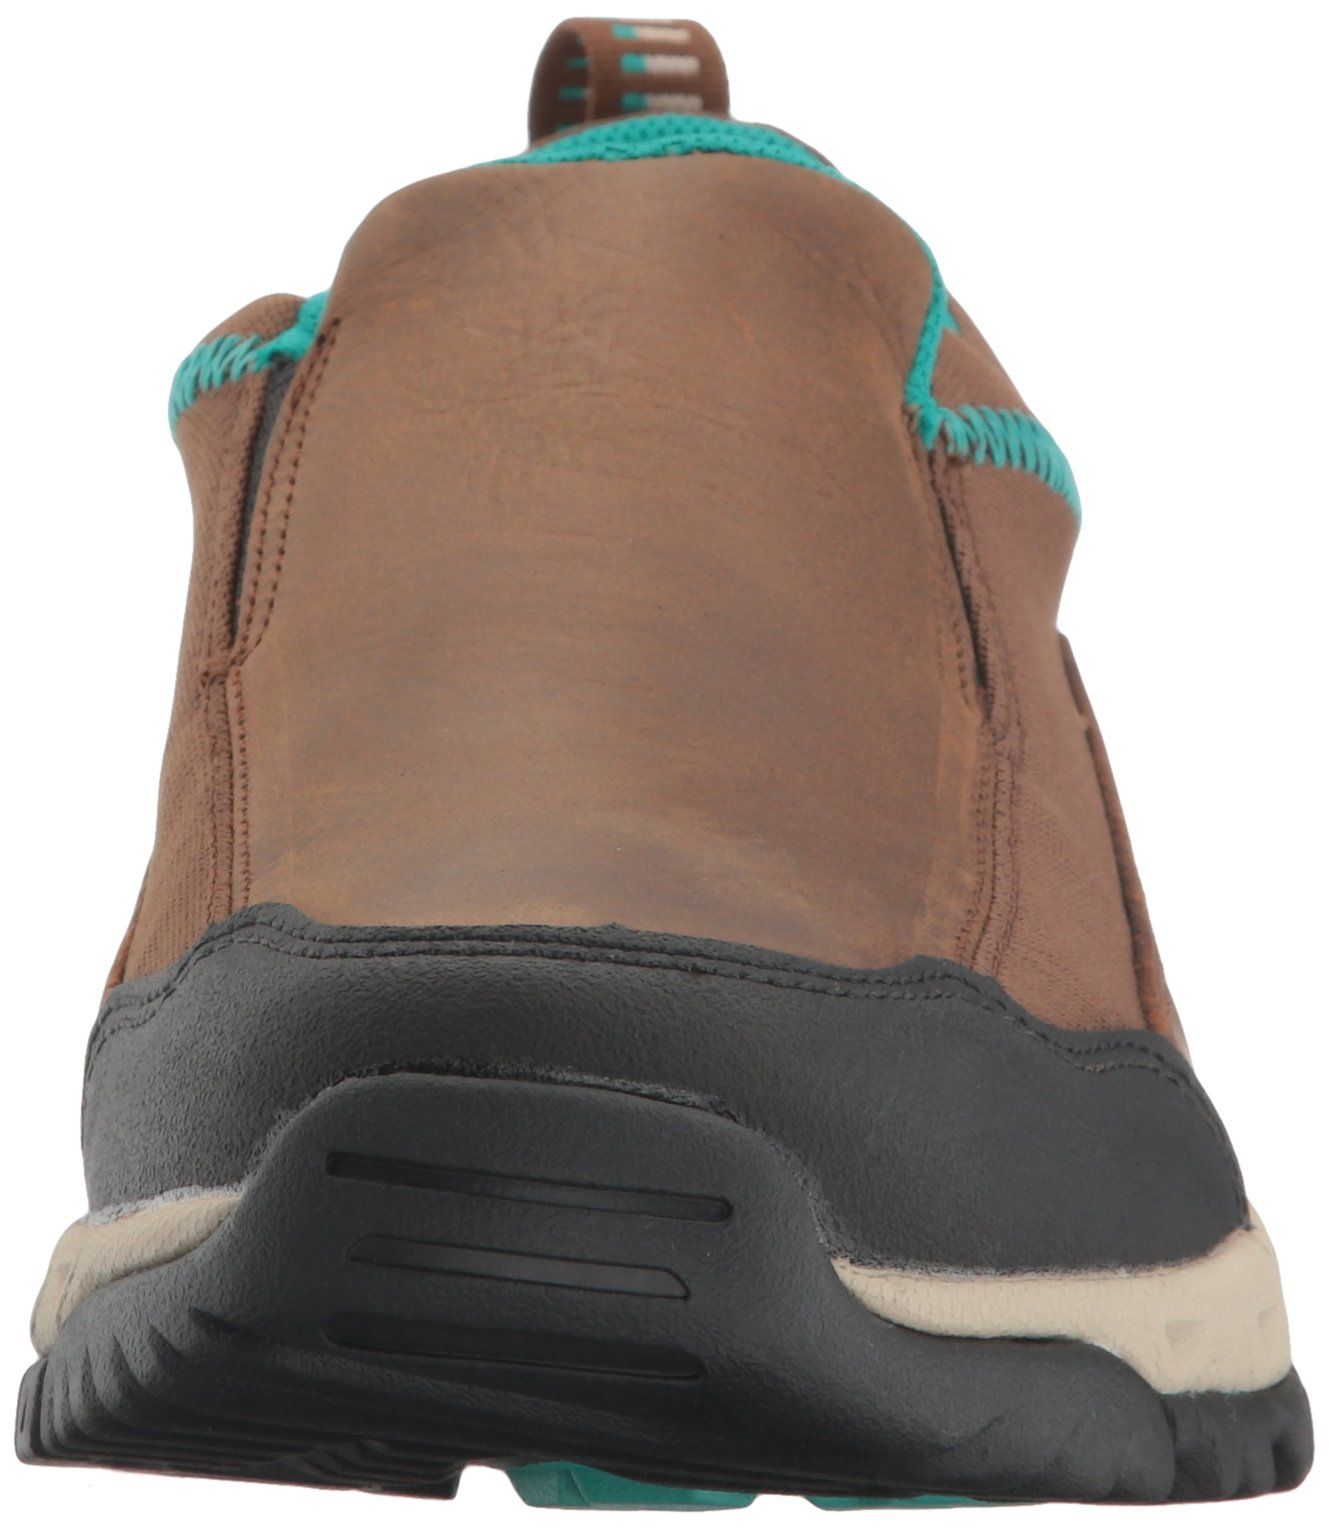 Ariat Women's Skyline Slip-on Hiking Shoe, Taupe, 8 B US by Ariat (Image #4)